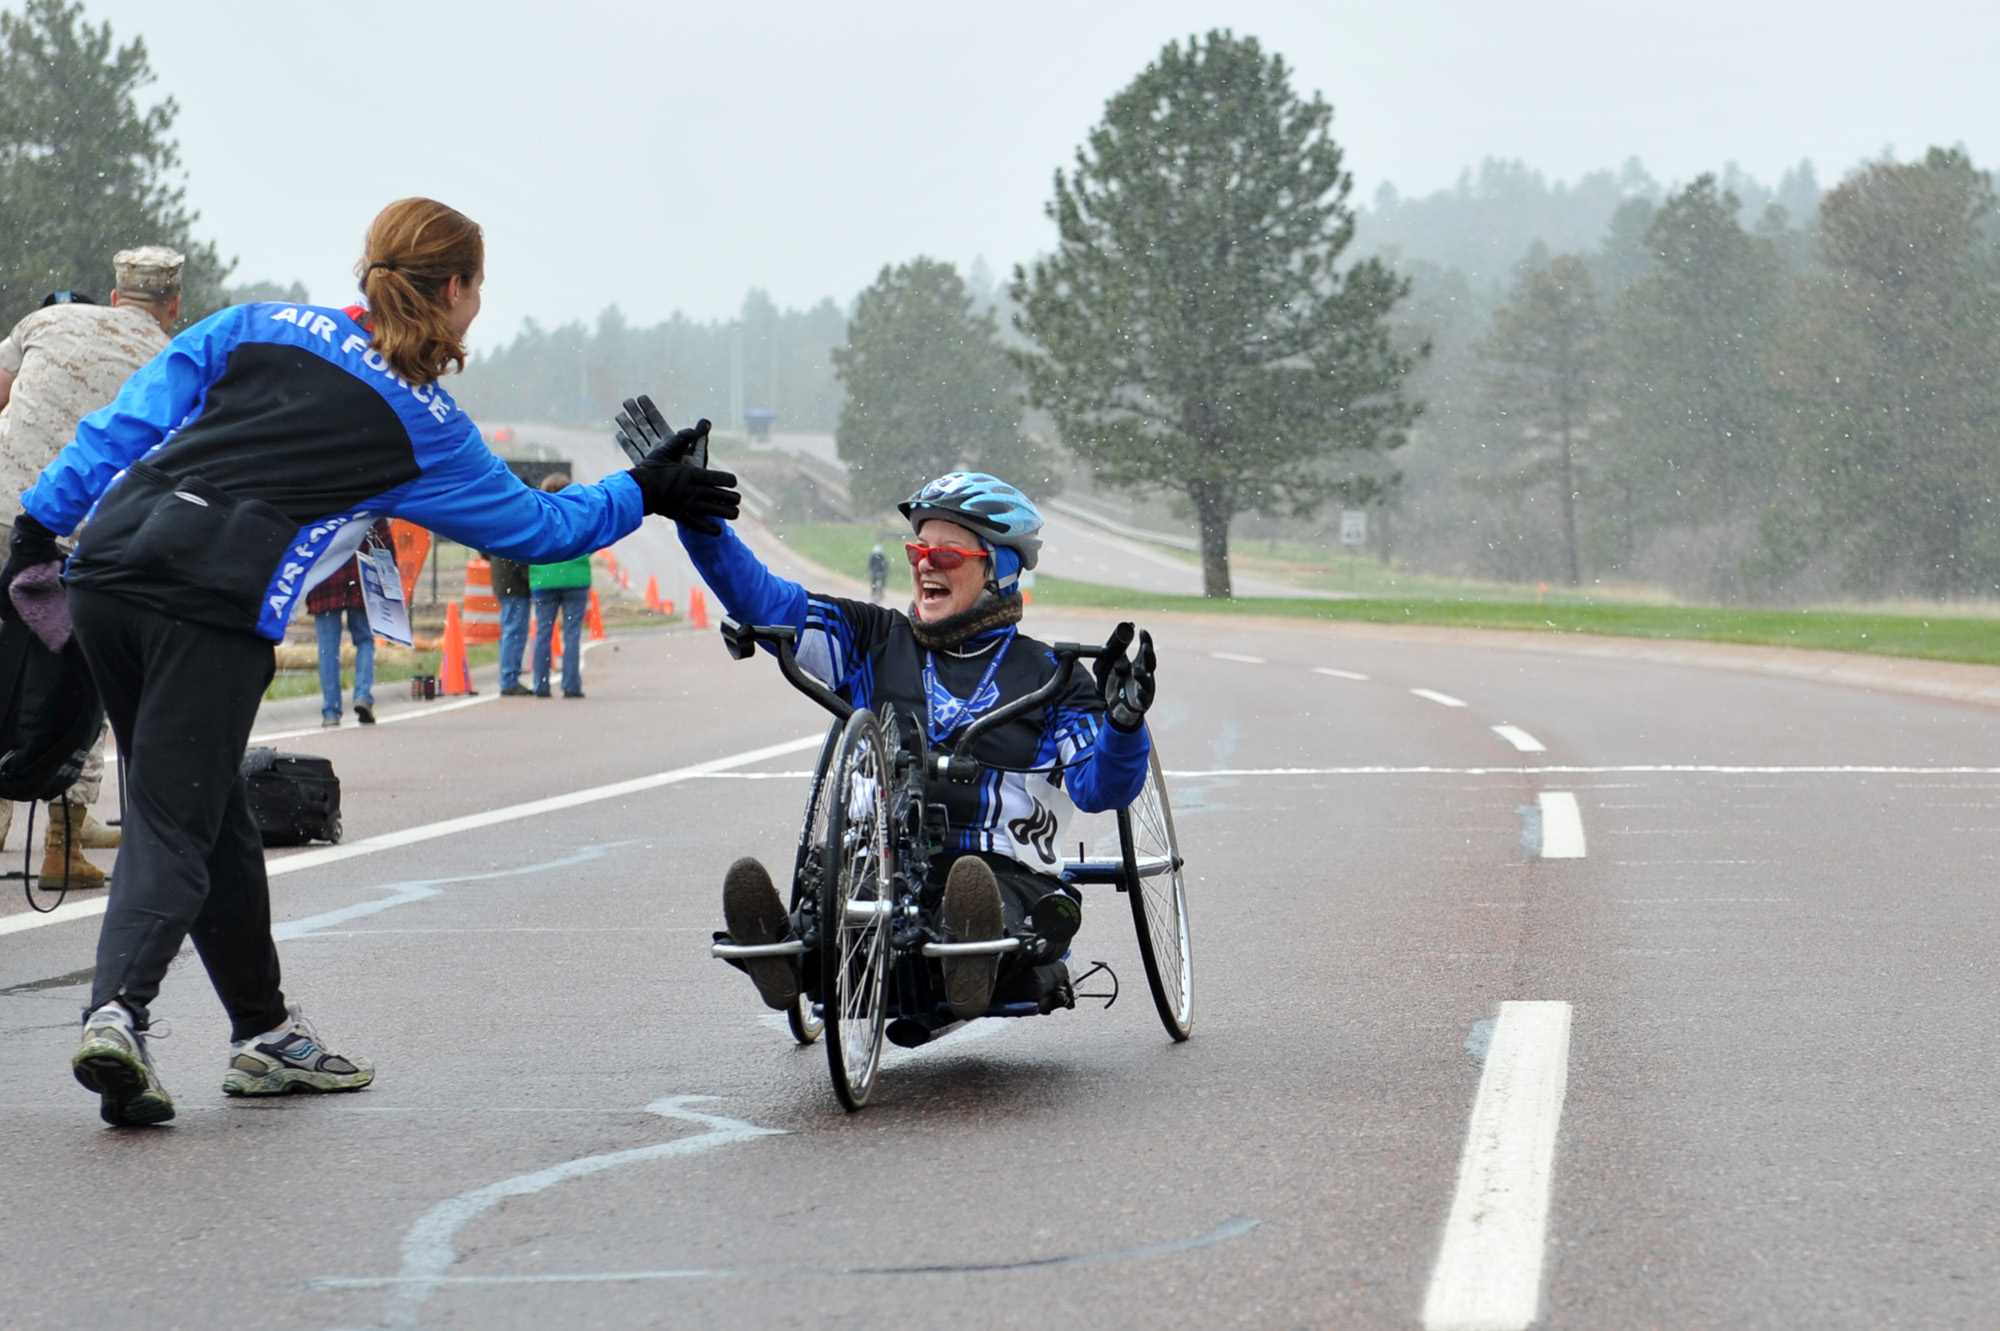 Fileteam air force head coach cami stock gives a high five fileteam air force head coach cami stock gives a high five greeting to jeanne goldy sanitate following her completion of the 10 kilometer hand cycle race kristyandbryce Gallery